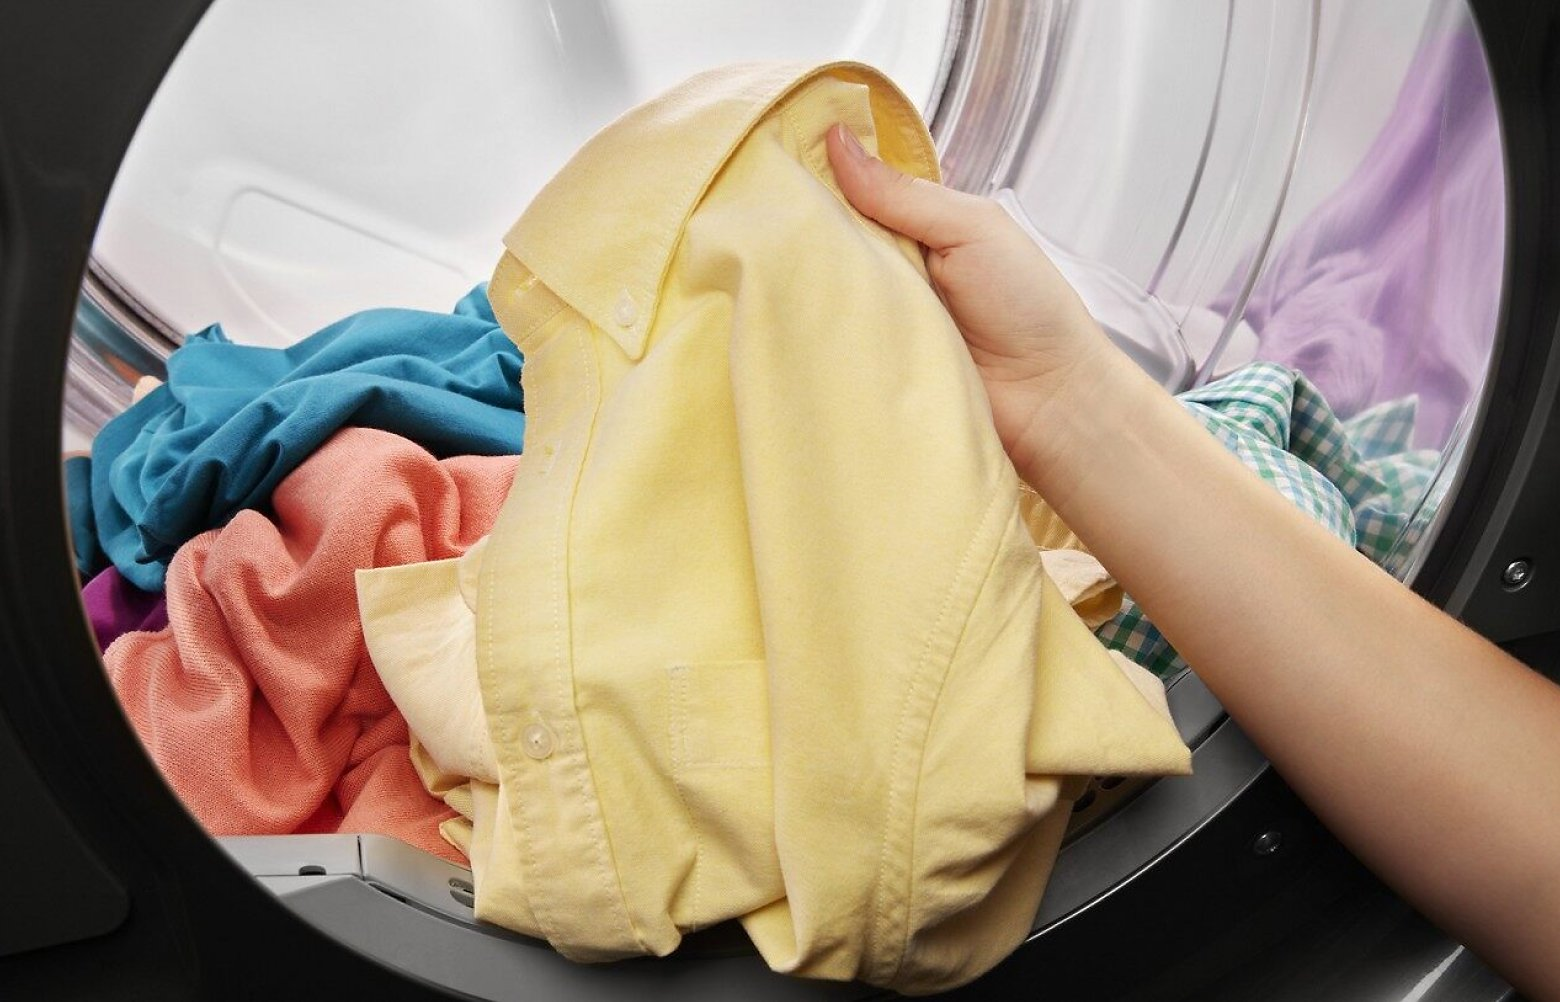 Hand pulling yellow shirt out of a dryer